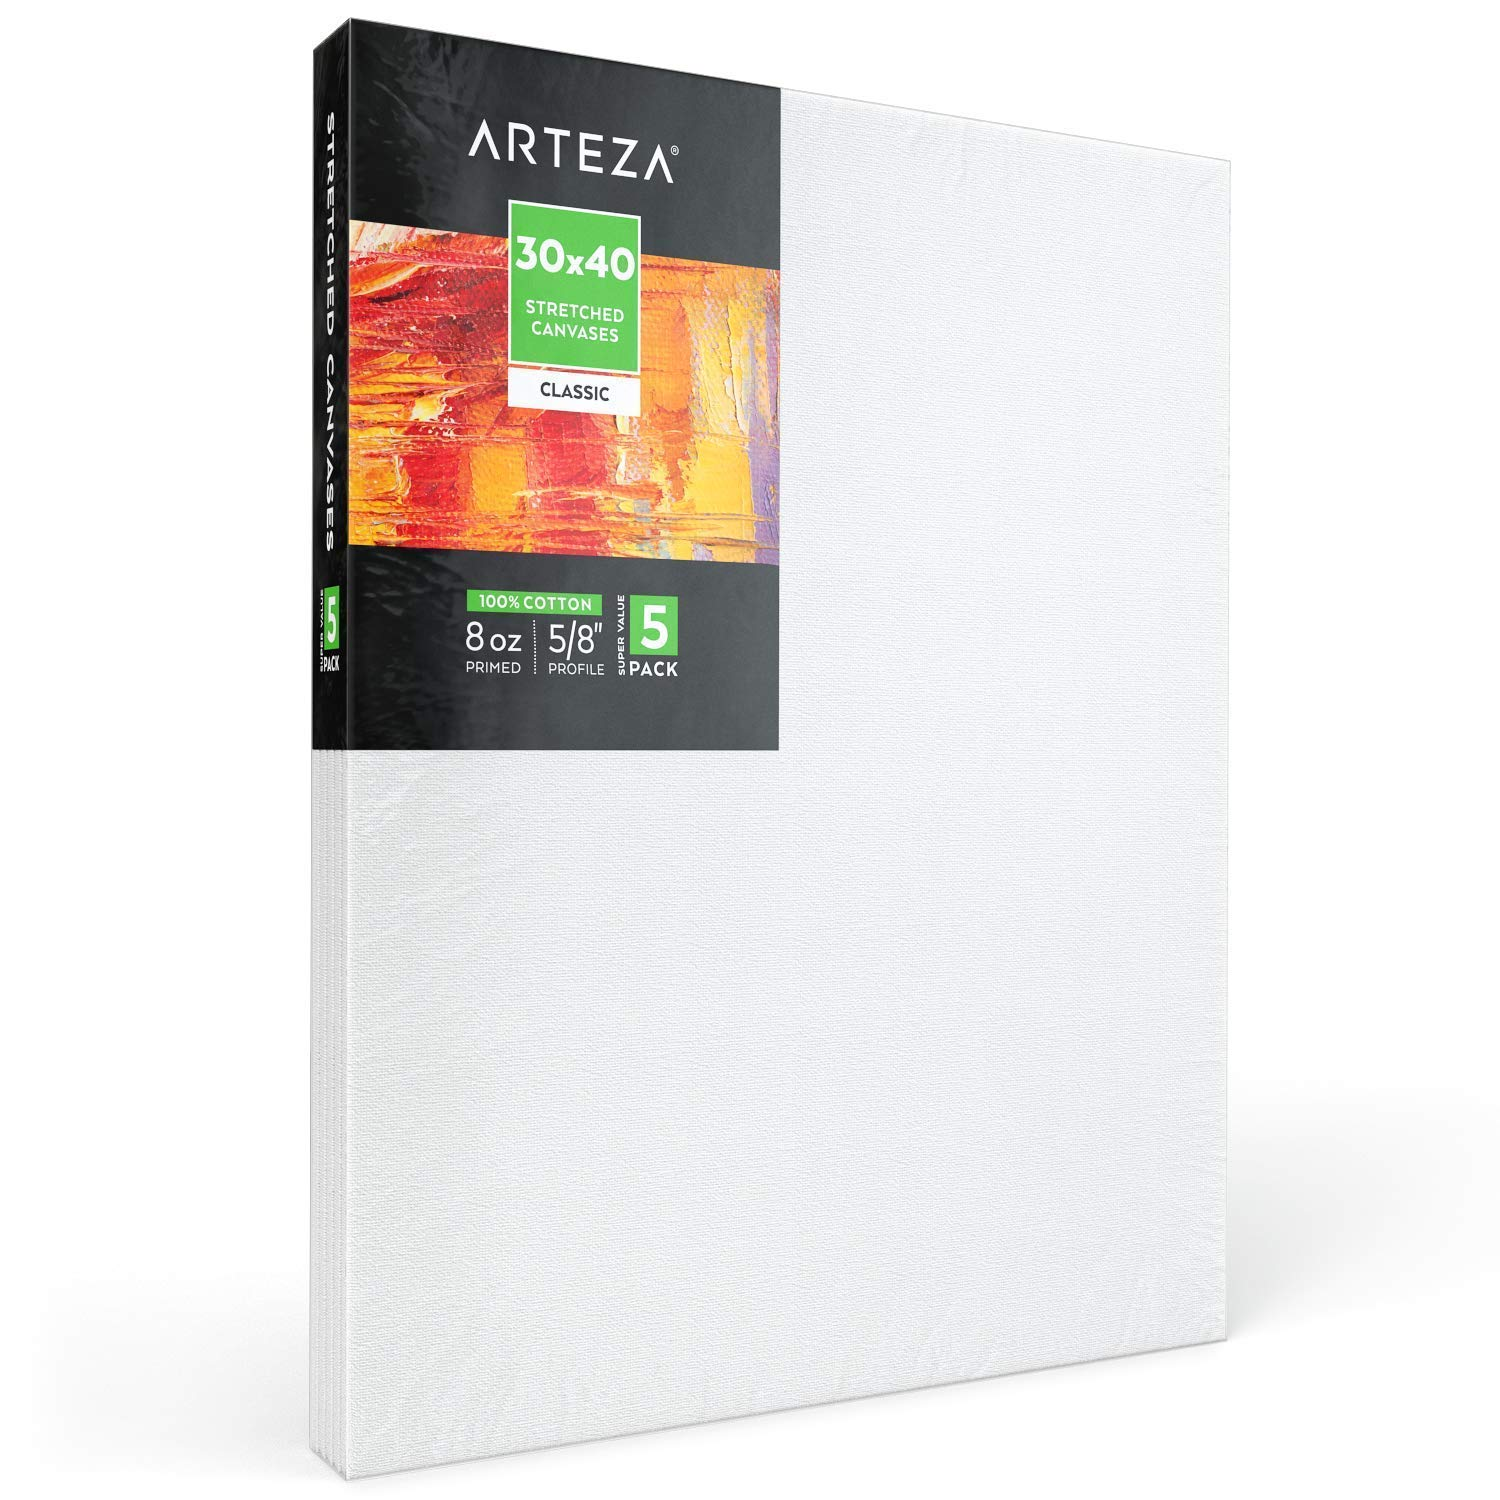 "Arteza 30x40"" Stretched White Blank Canvas, Bulk Pack of 5, Primed, 100% Cotton for Painting, Acrylic Pouring, Oil Paint & Wet Art Media, Canvases for Professional Artist, Hobby Painters & Beginner by ARTEZA (Image #6)"